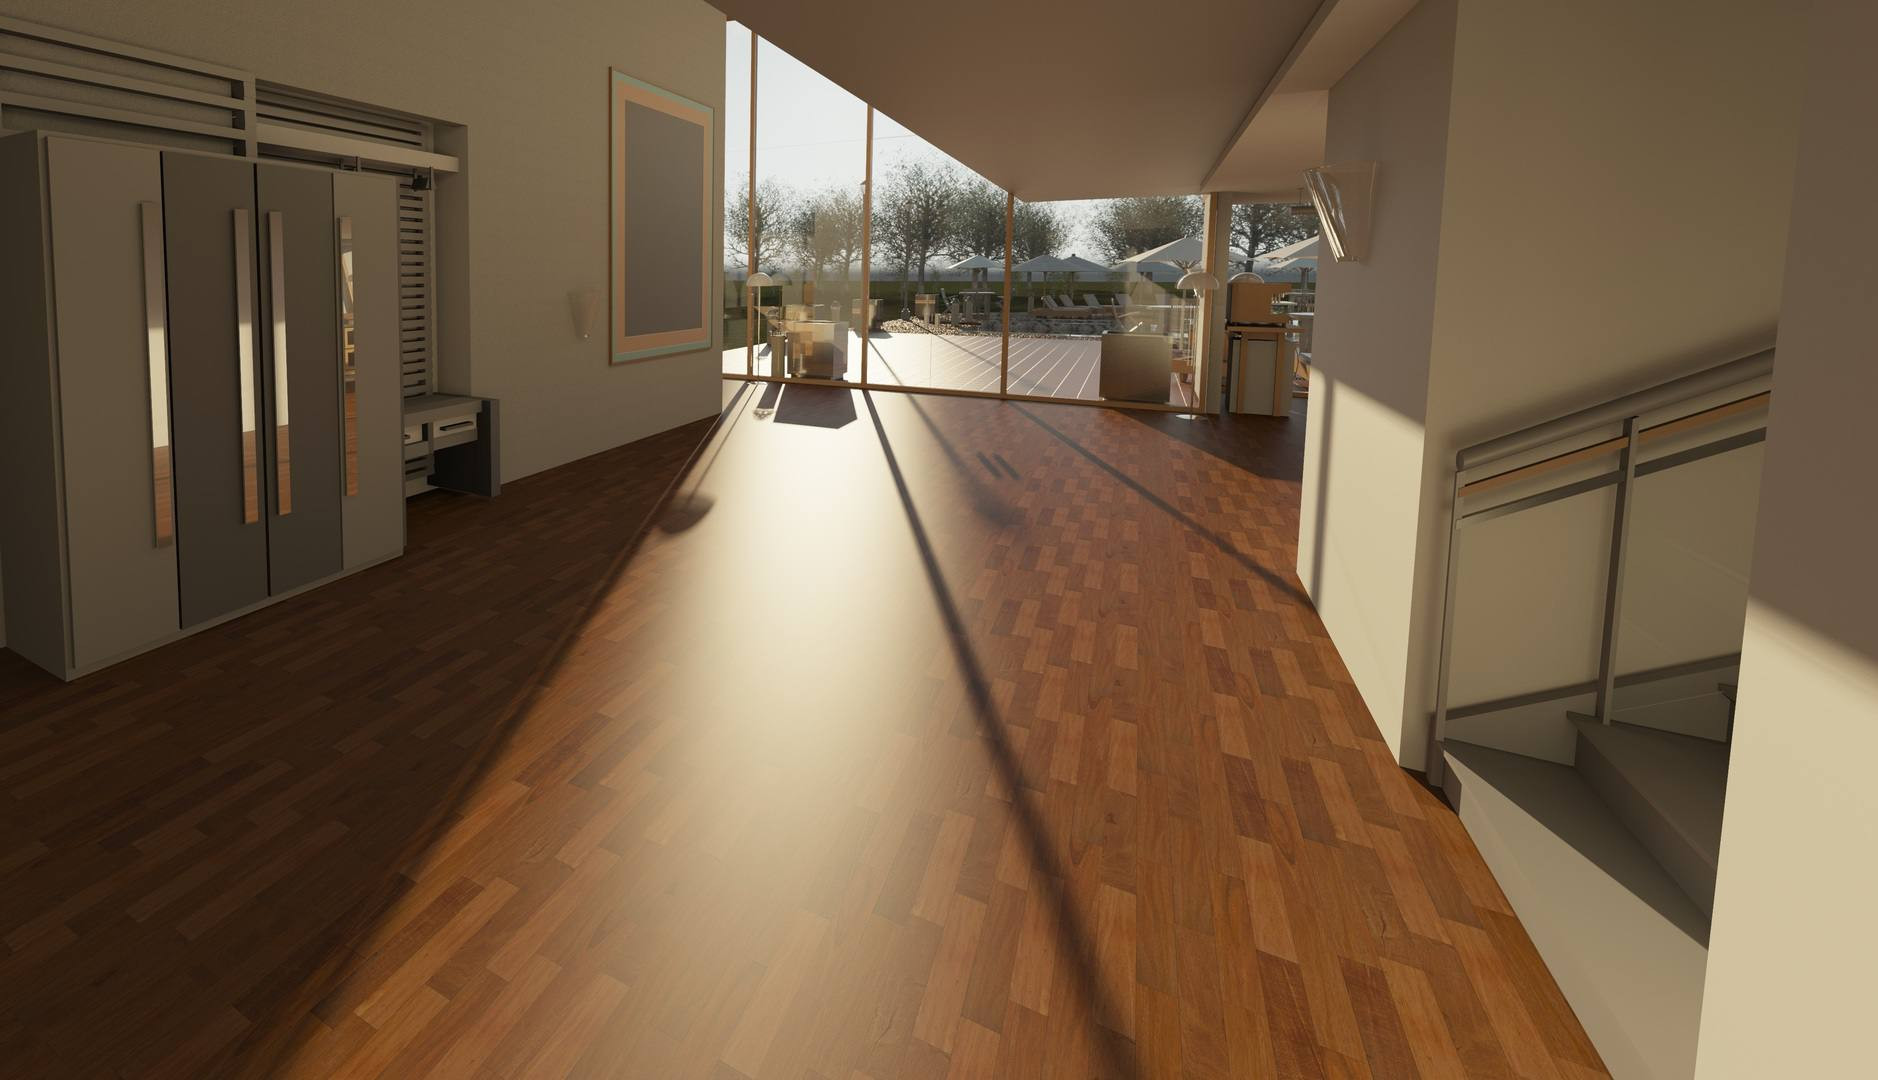 installing solid hardwood floors of common flooring types currently used in renovation and building regarding architecture wood house floor interior window 917178 pxhere com 5ba27a2cc9e77c00503b27b9